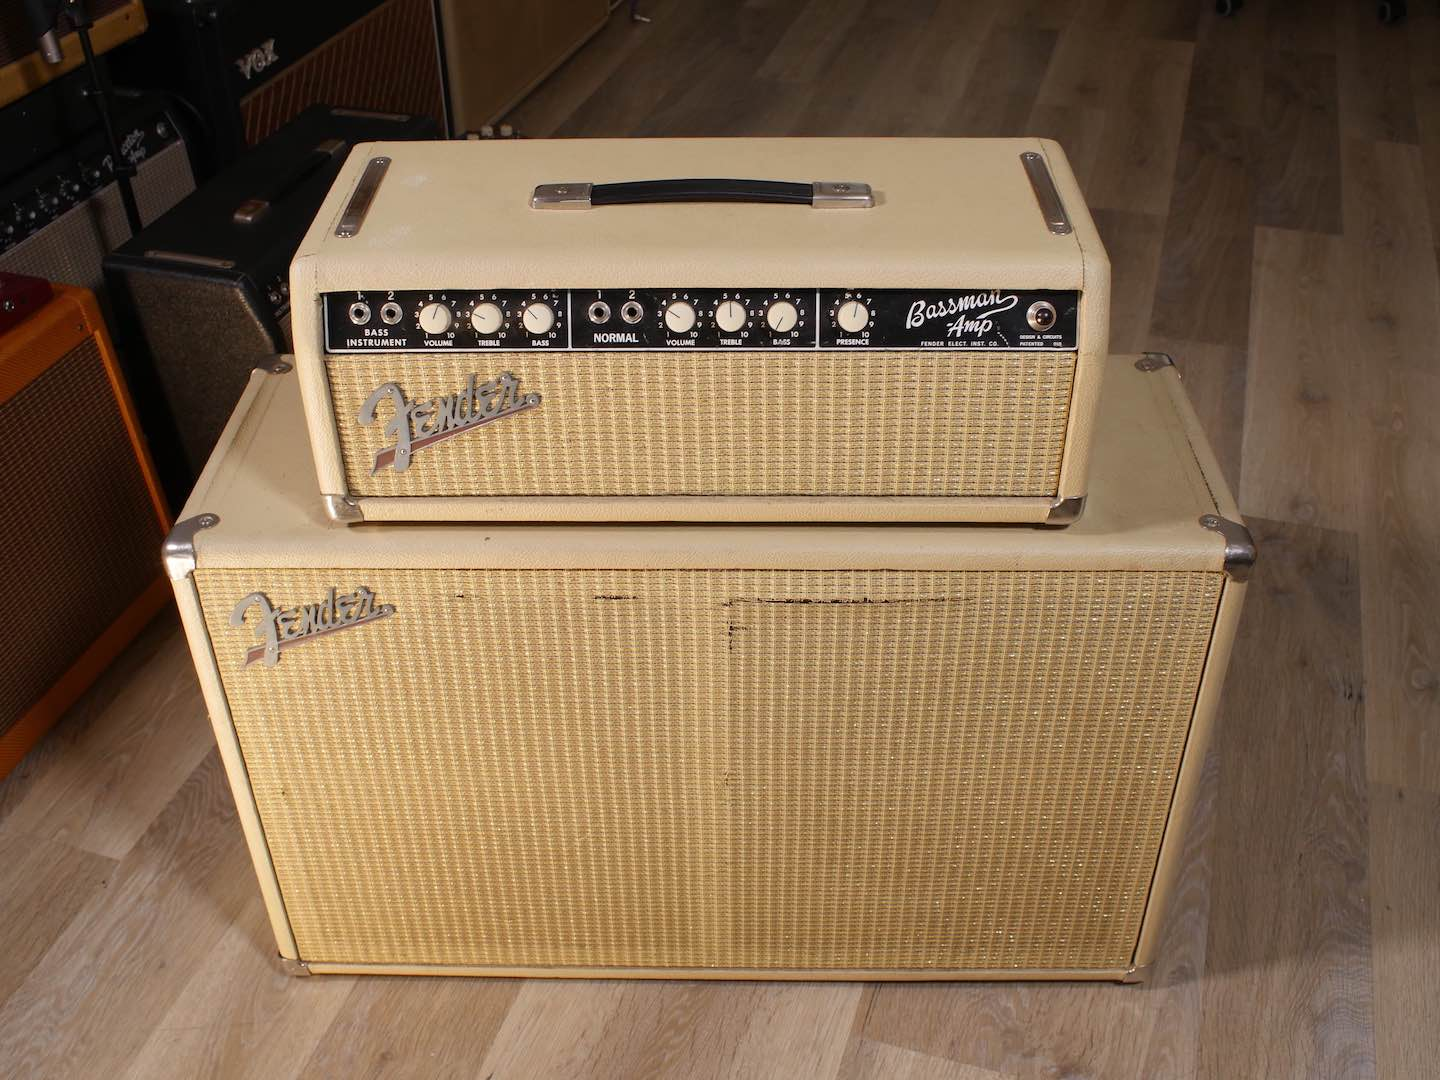 1964 '63 spec Fender Bassman 6G6-B RARE export model 110-240v